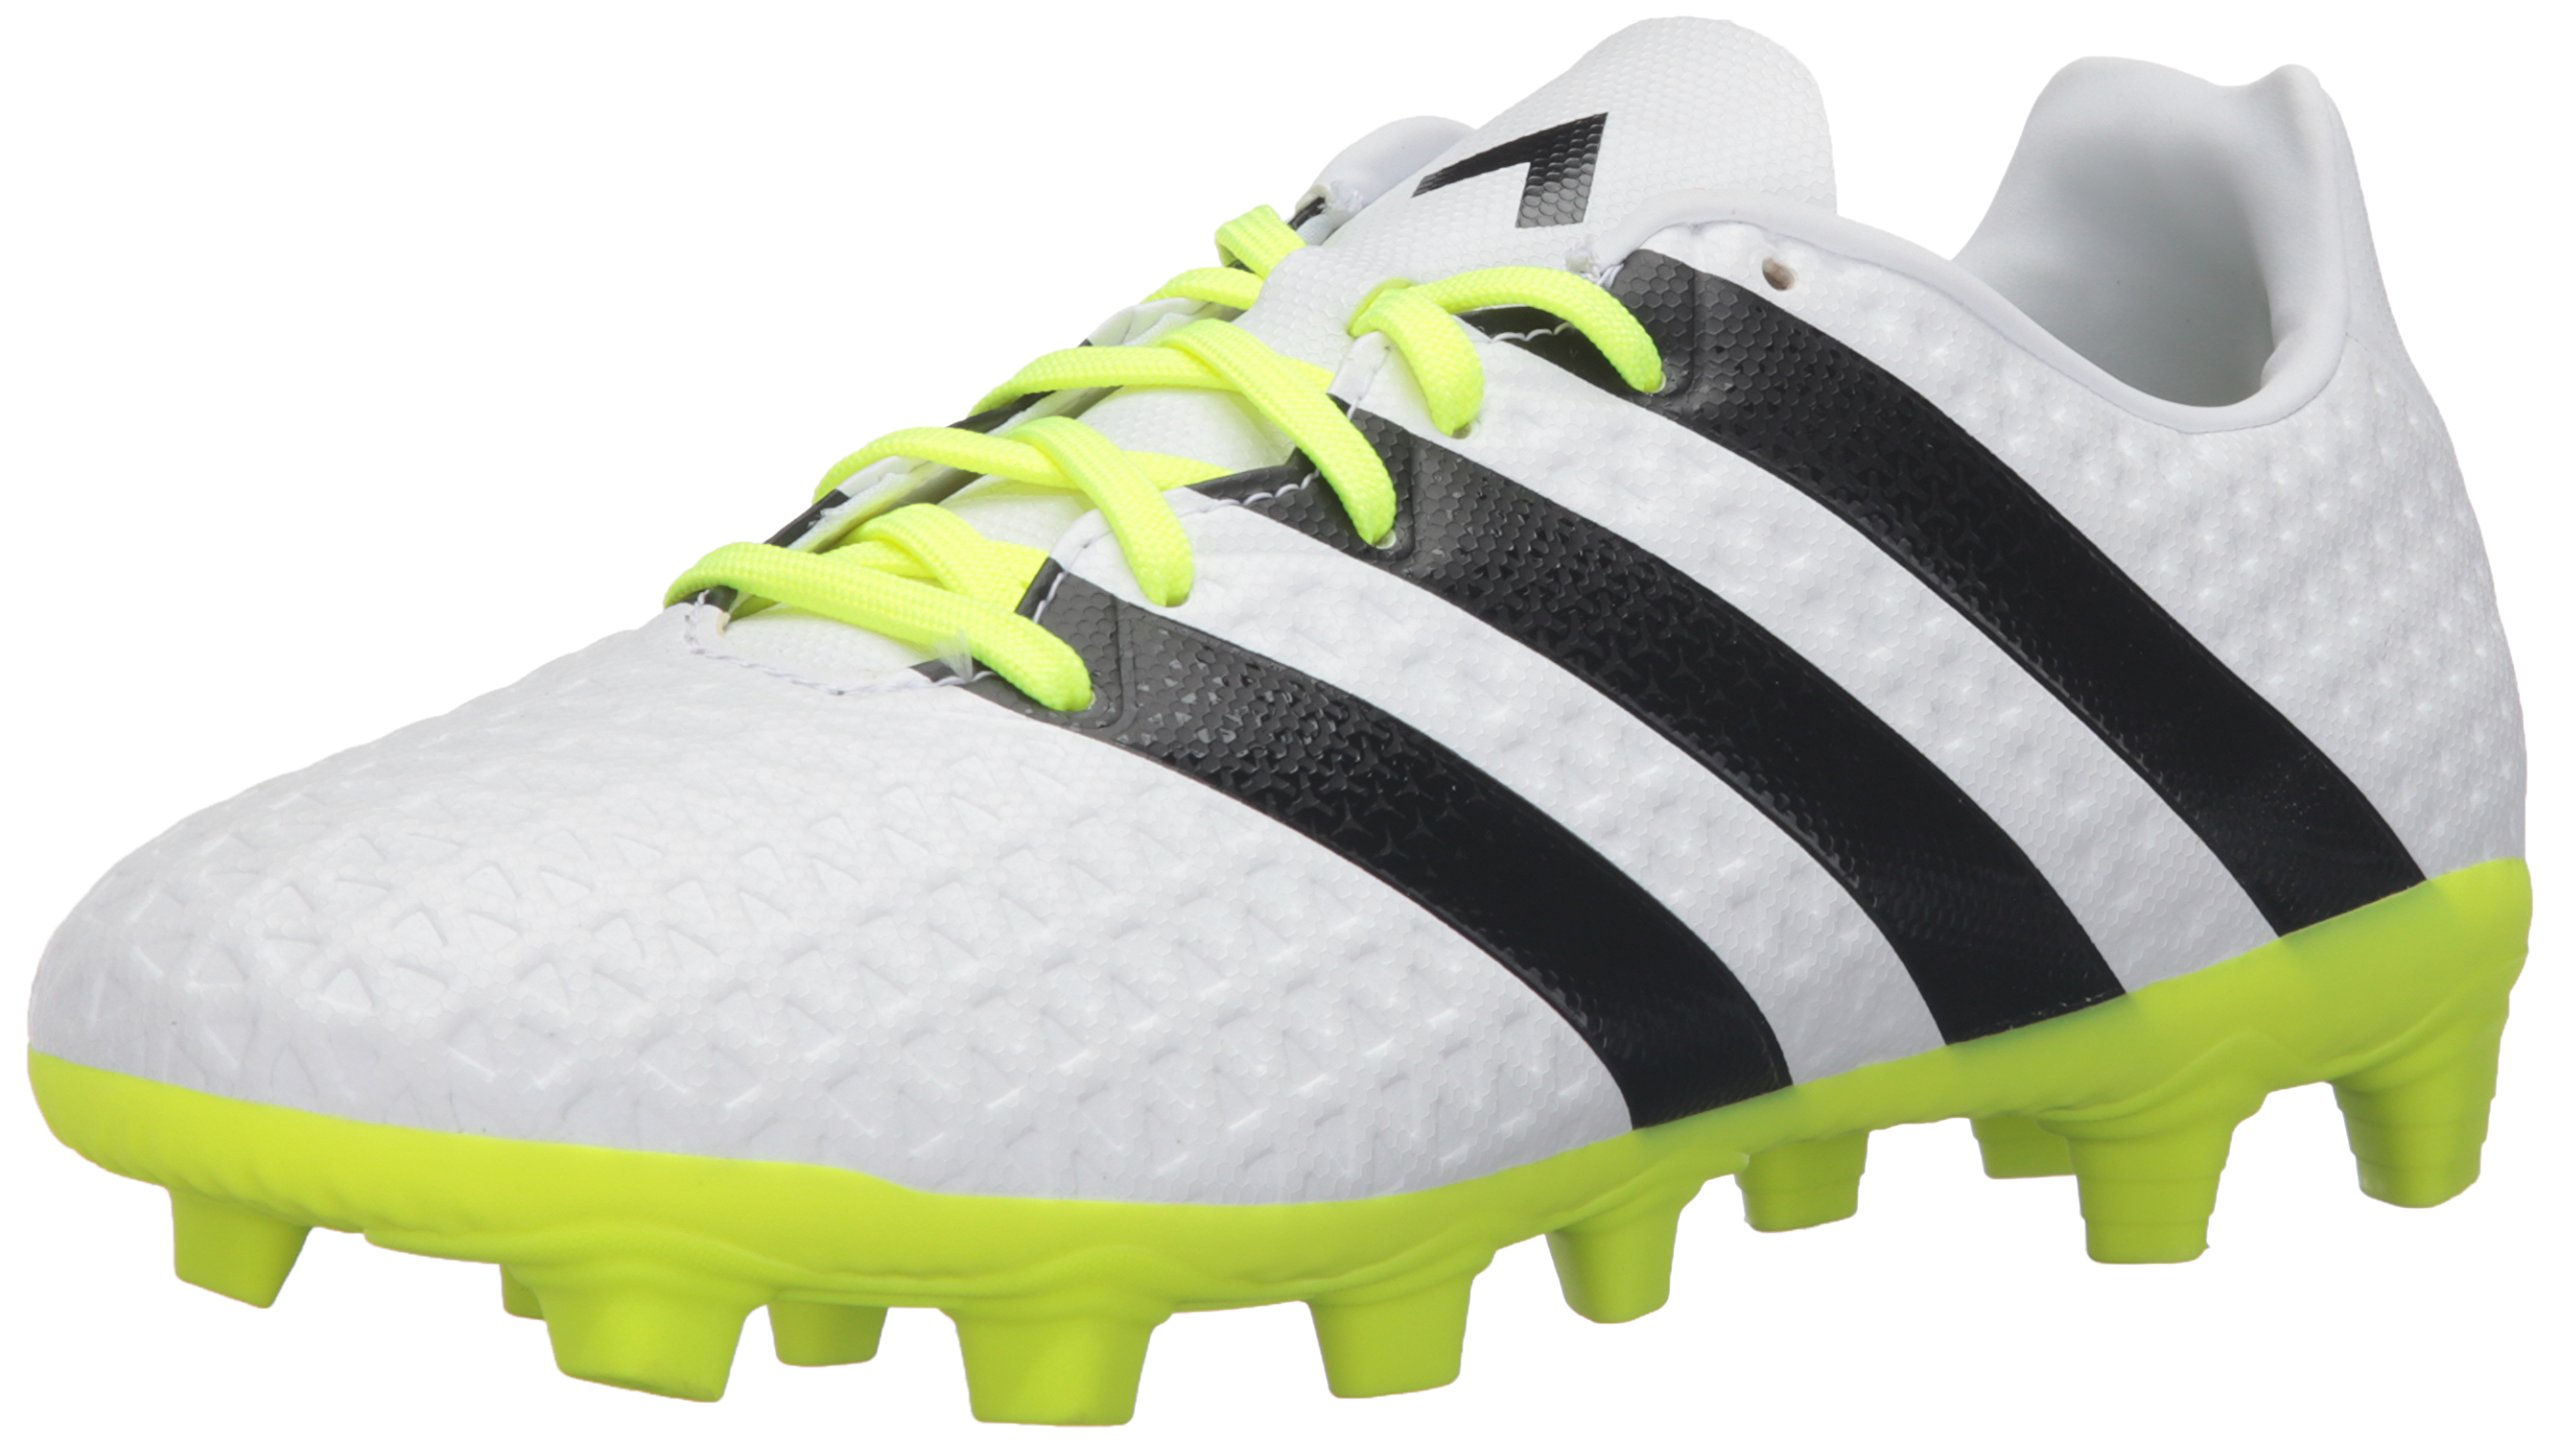 the latest ad9c9 eec20 adidas Performance Women's Ace 16.4 Fxg W Soccer Shoe,  White/Black/Electricity, 9 M US